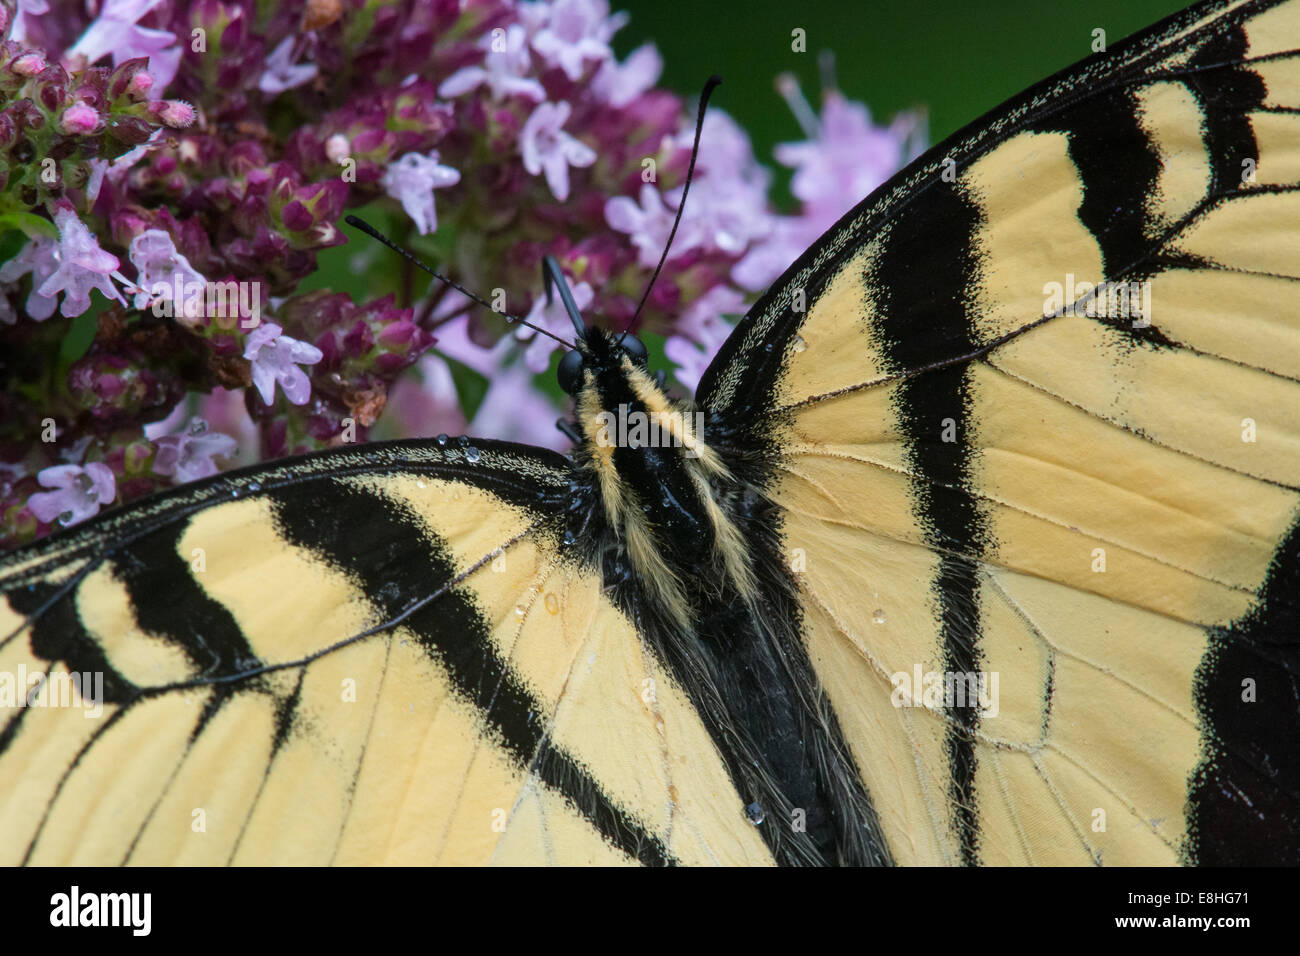 Eastern Tiger Swallowtail feeding on nectar. - Stock Image